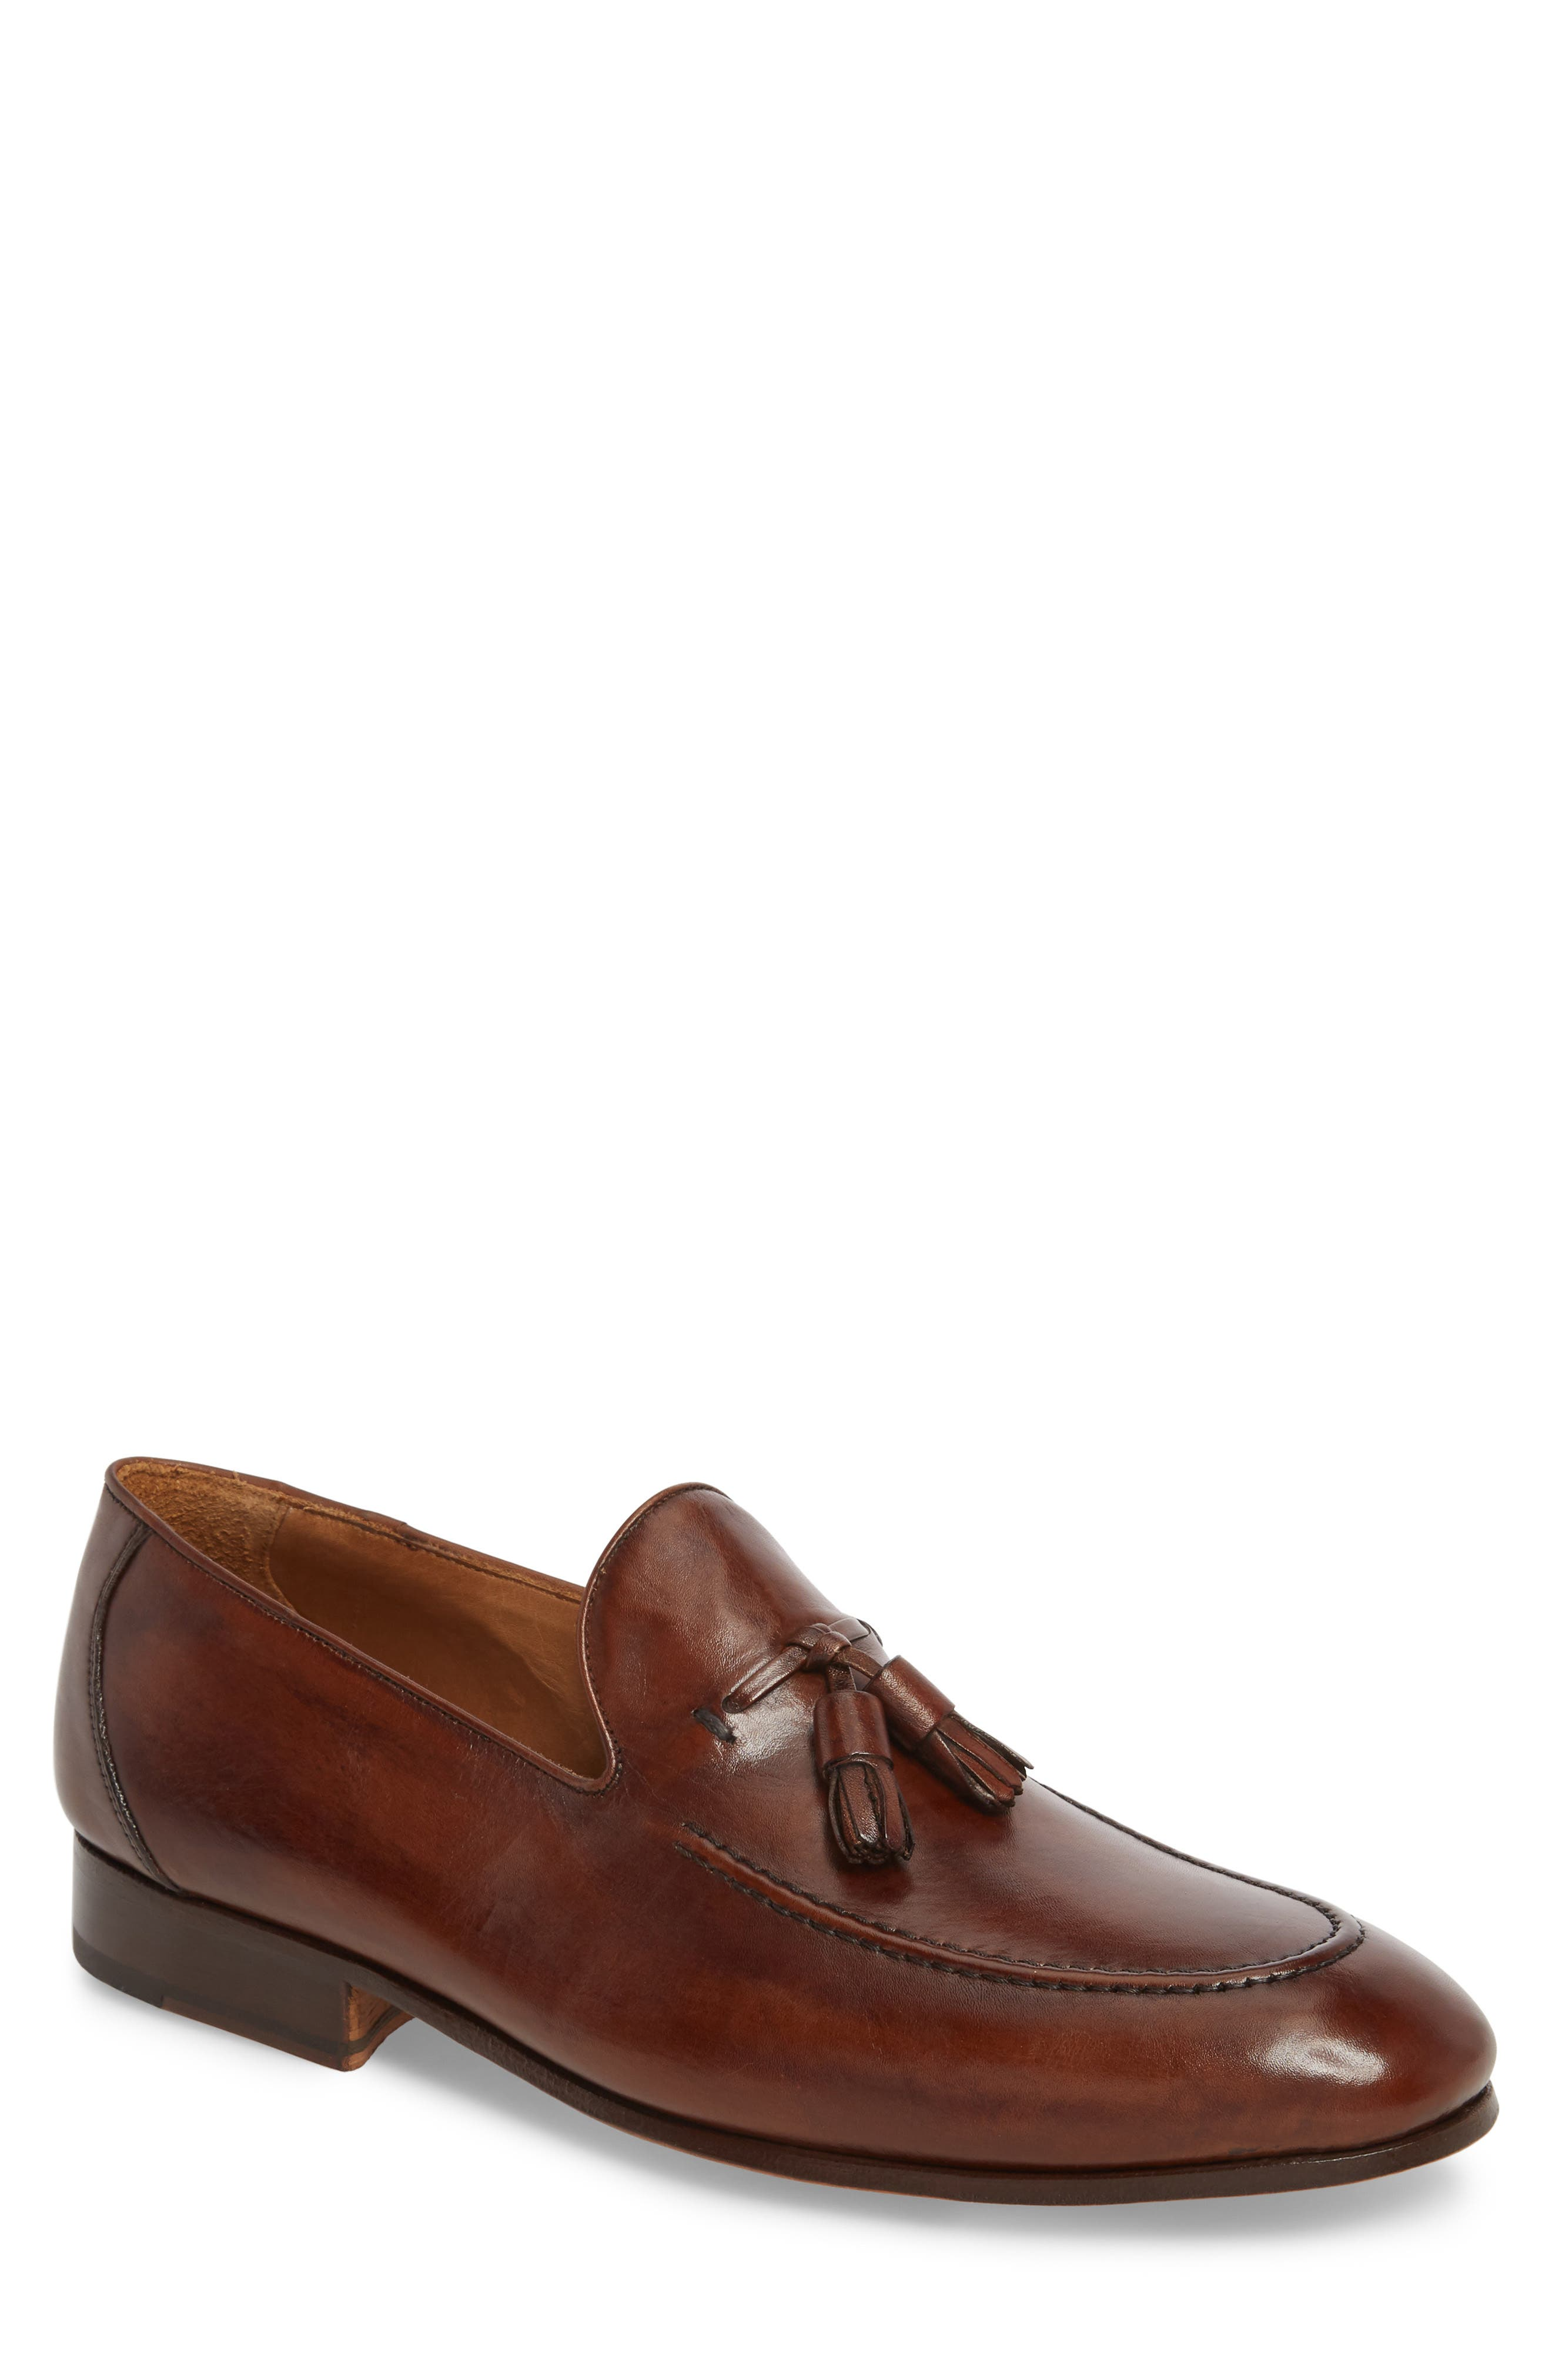 Ario Tassel Loafer,                             Main thumbnail 1, color,                             BROWN LEATHER